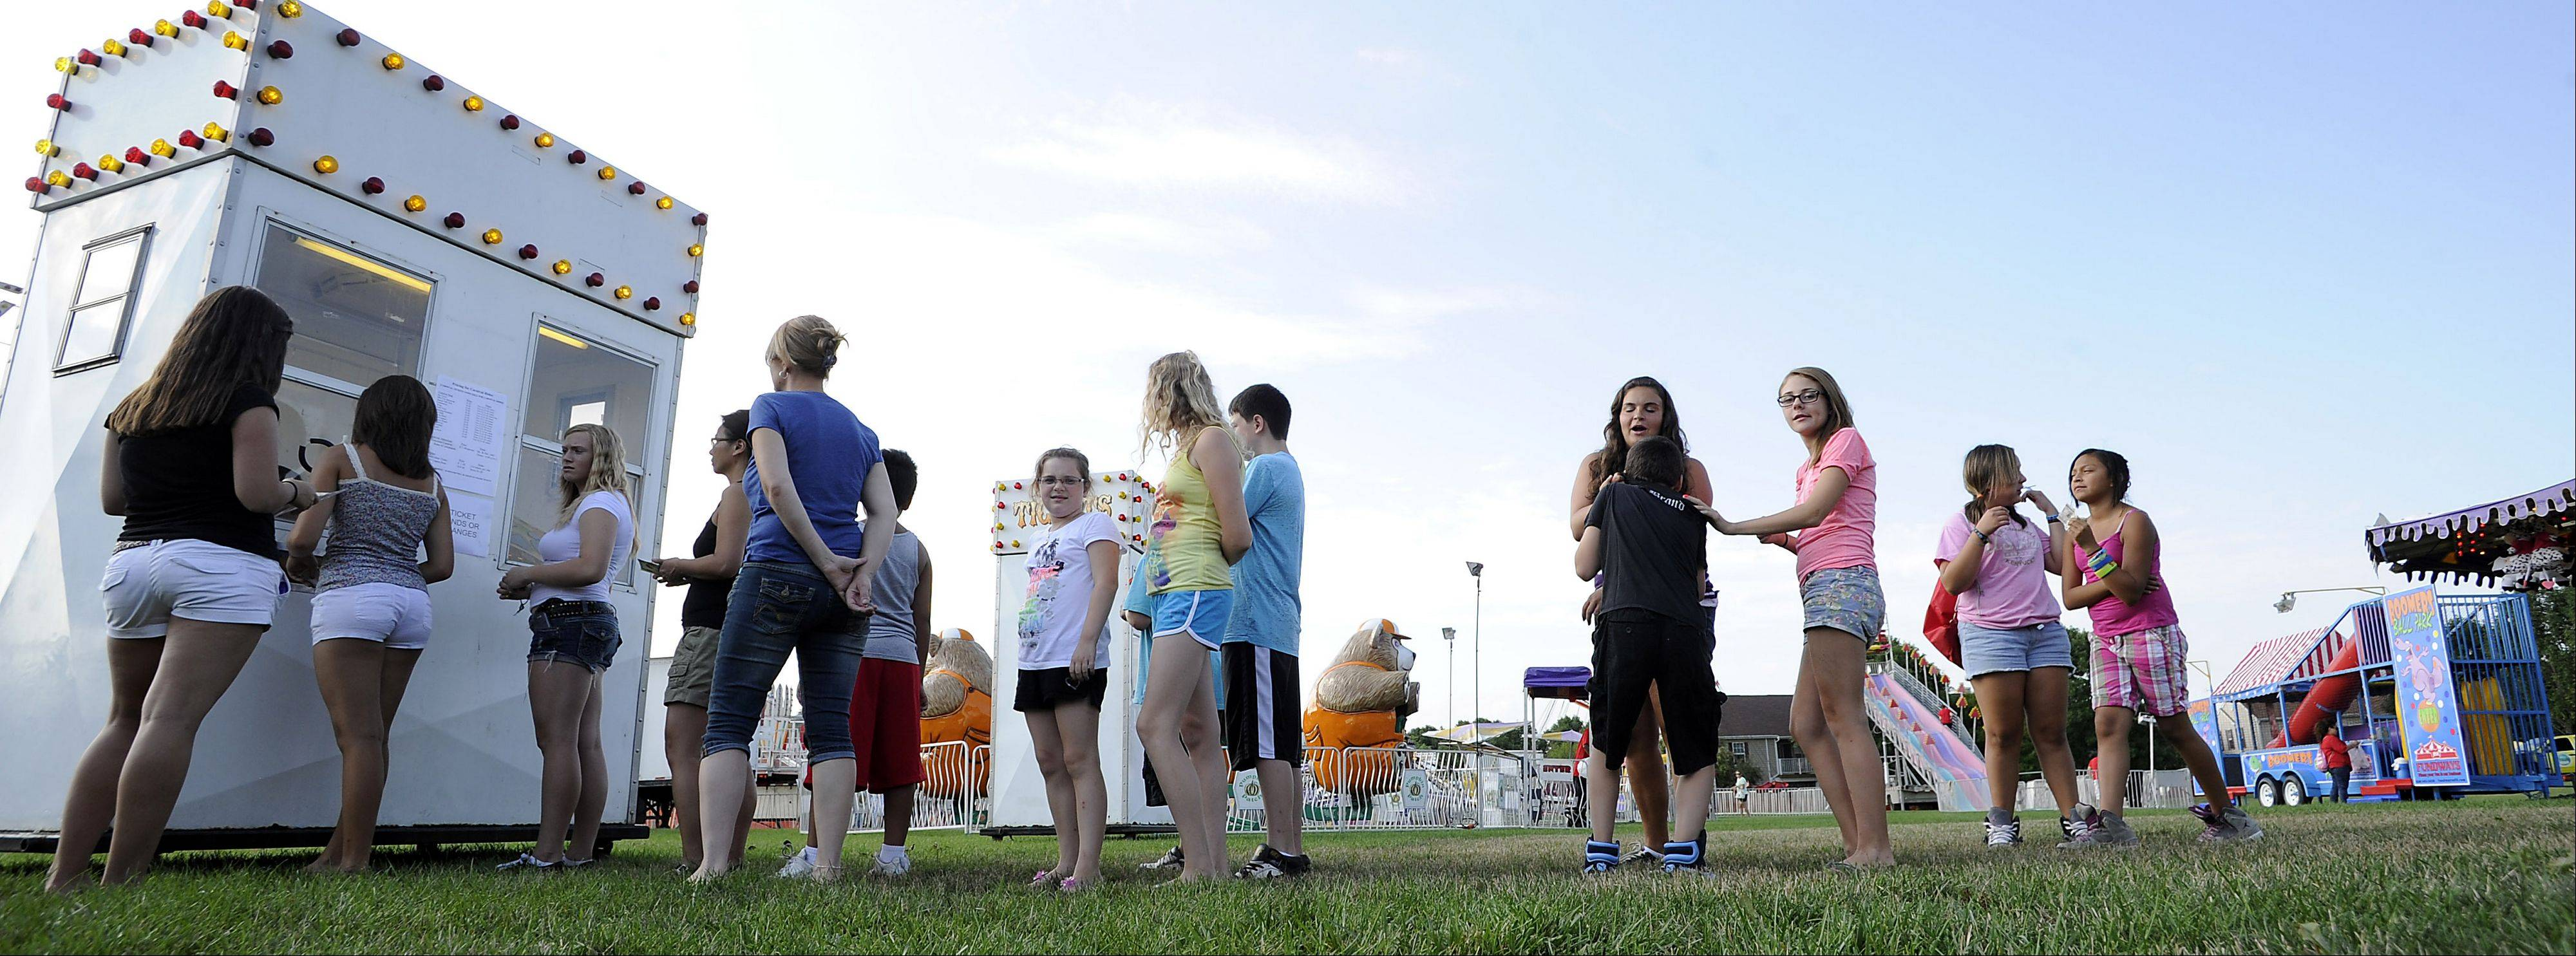 Kids wait in lines to buy ride tickets at the Streamwood Summer Celebration on Friday.